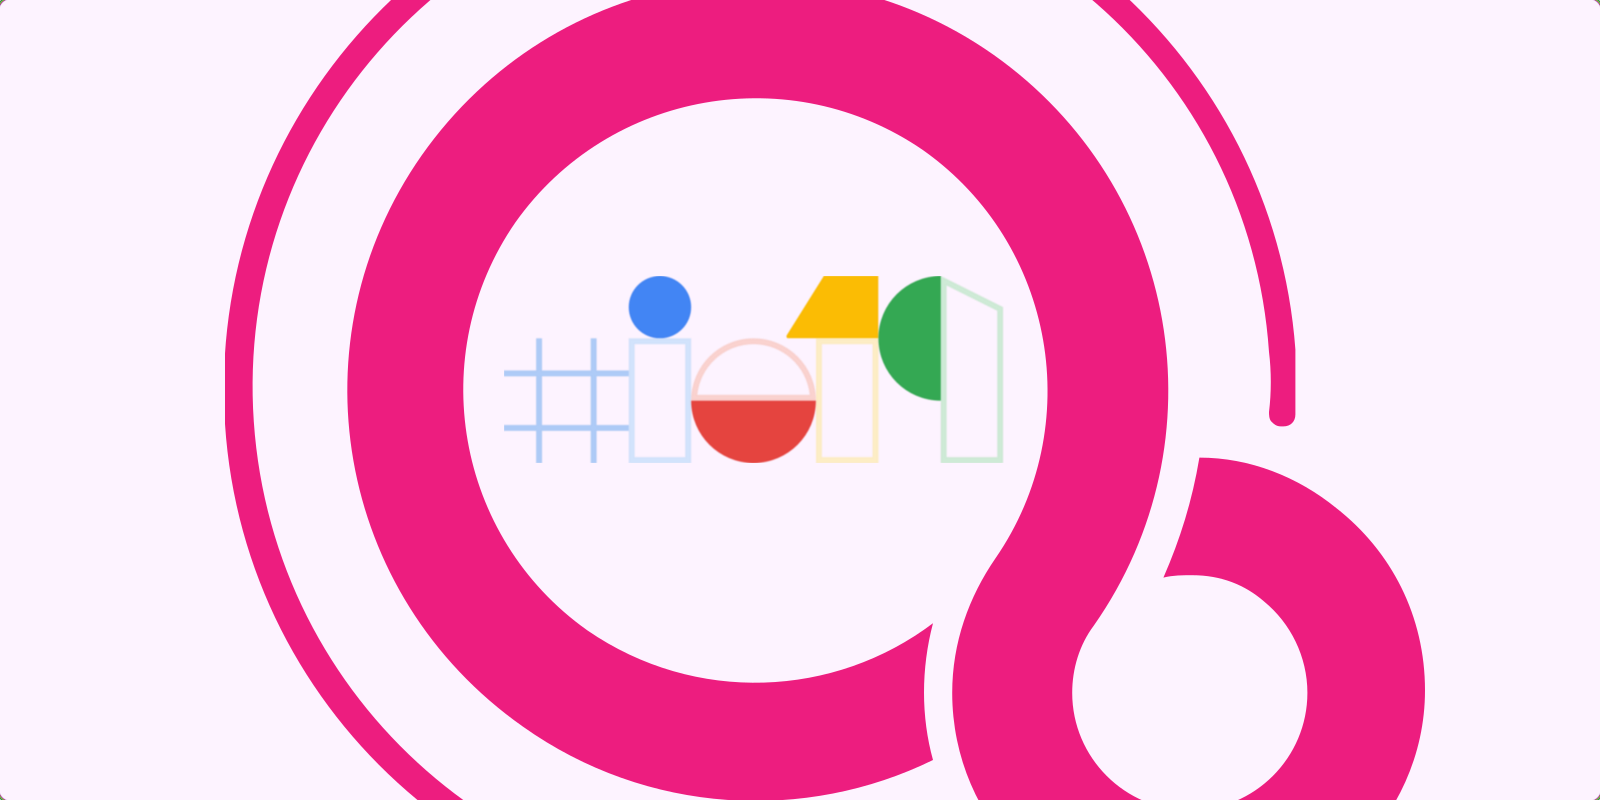 Google quietly acknowledges Fuchsia during I/O 2019 - 9to5Google